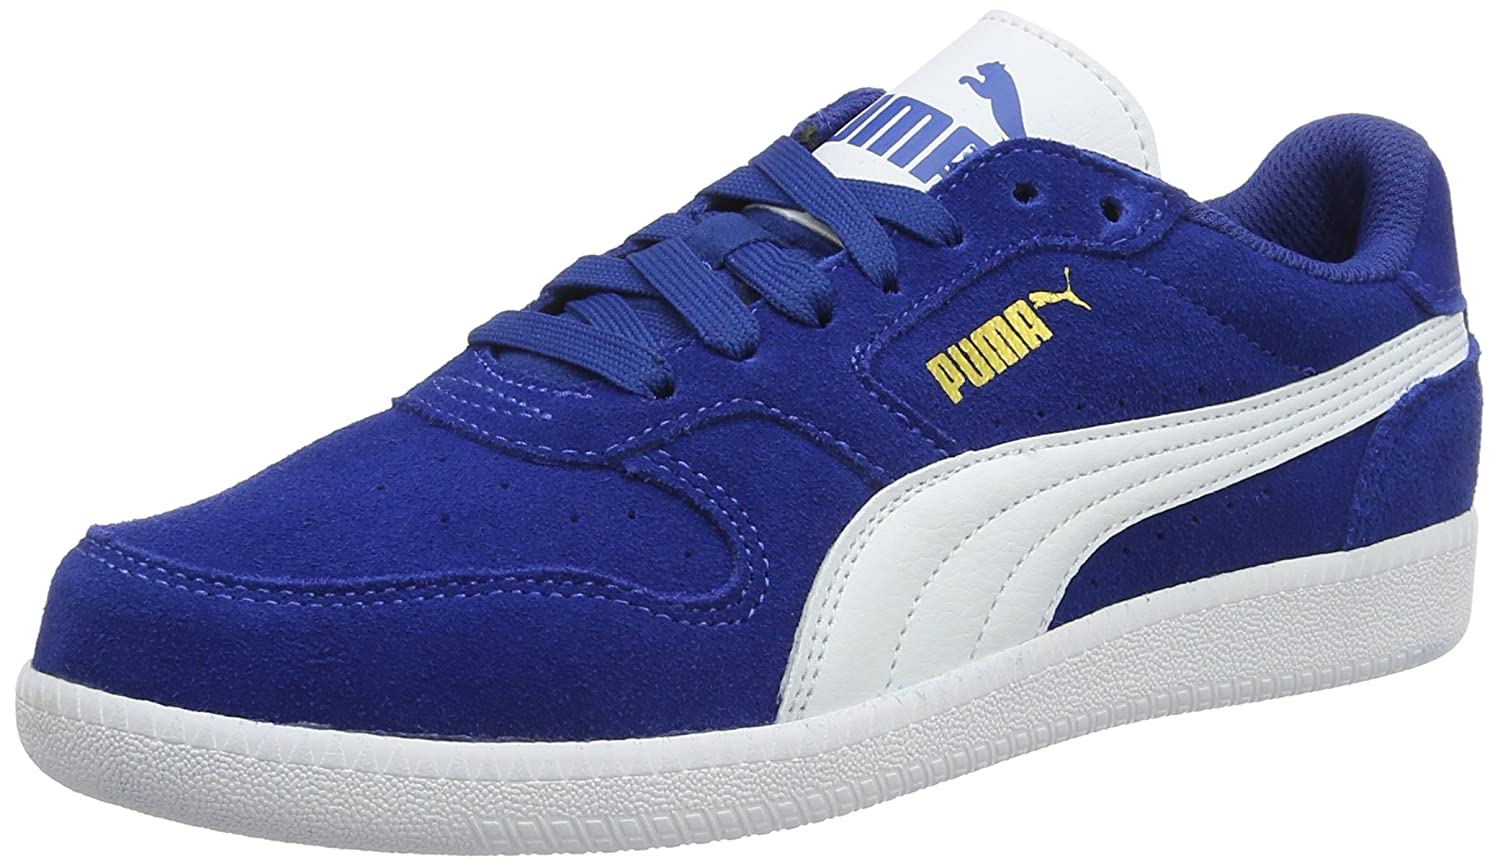 Puma Men's Icra Trainer Sd Leather Sneakers: Buy Online at Low Prices in  India - Amazon.in